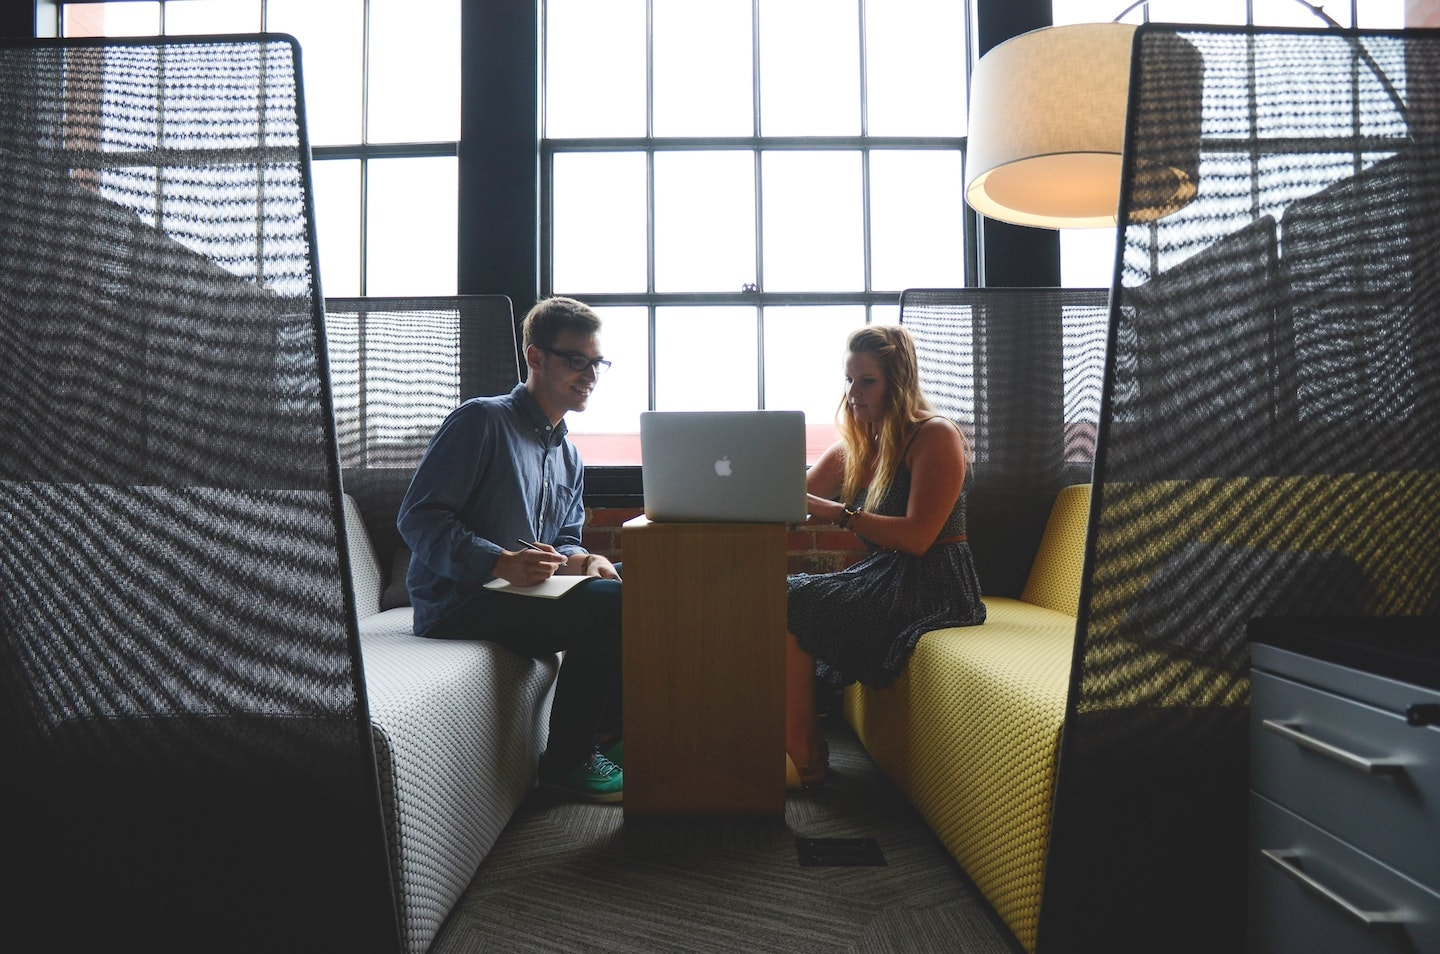 Two people sit together looking at the computer in a colorful, modern office setting with large windows